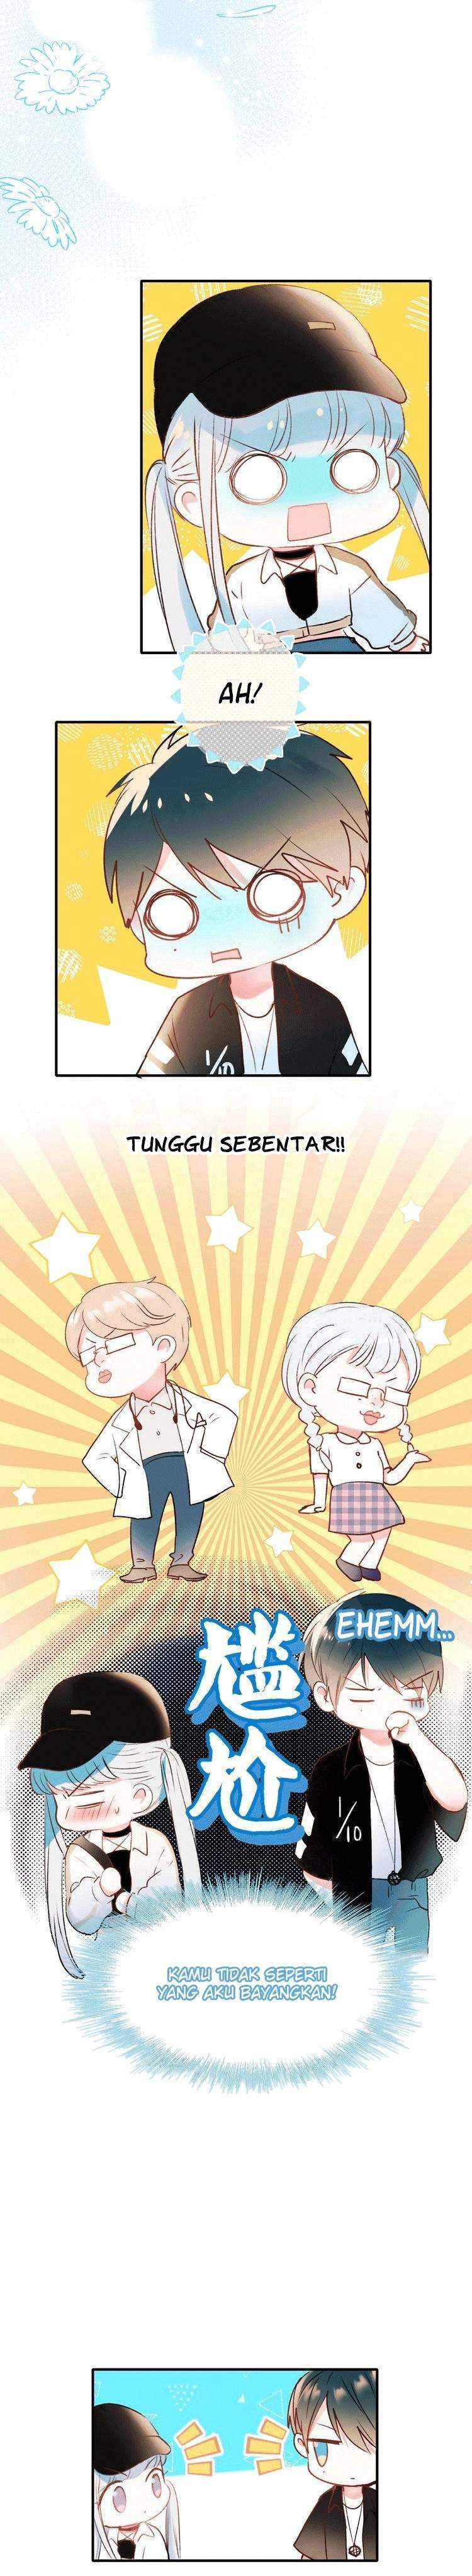 To Be A Winner Chapter 33